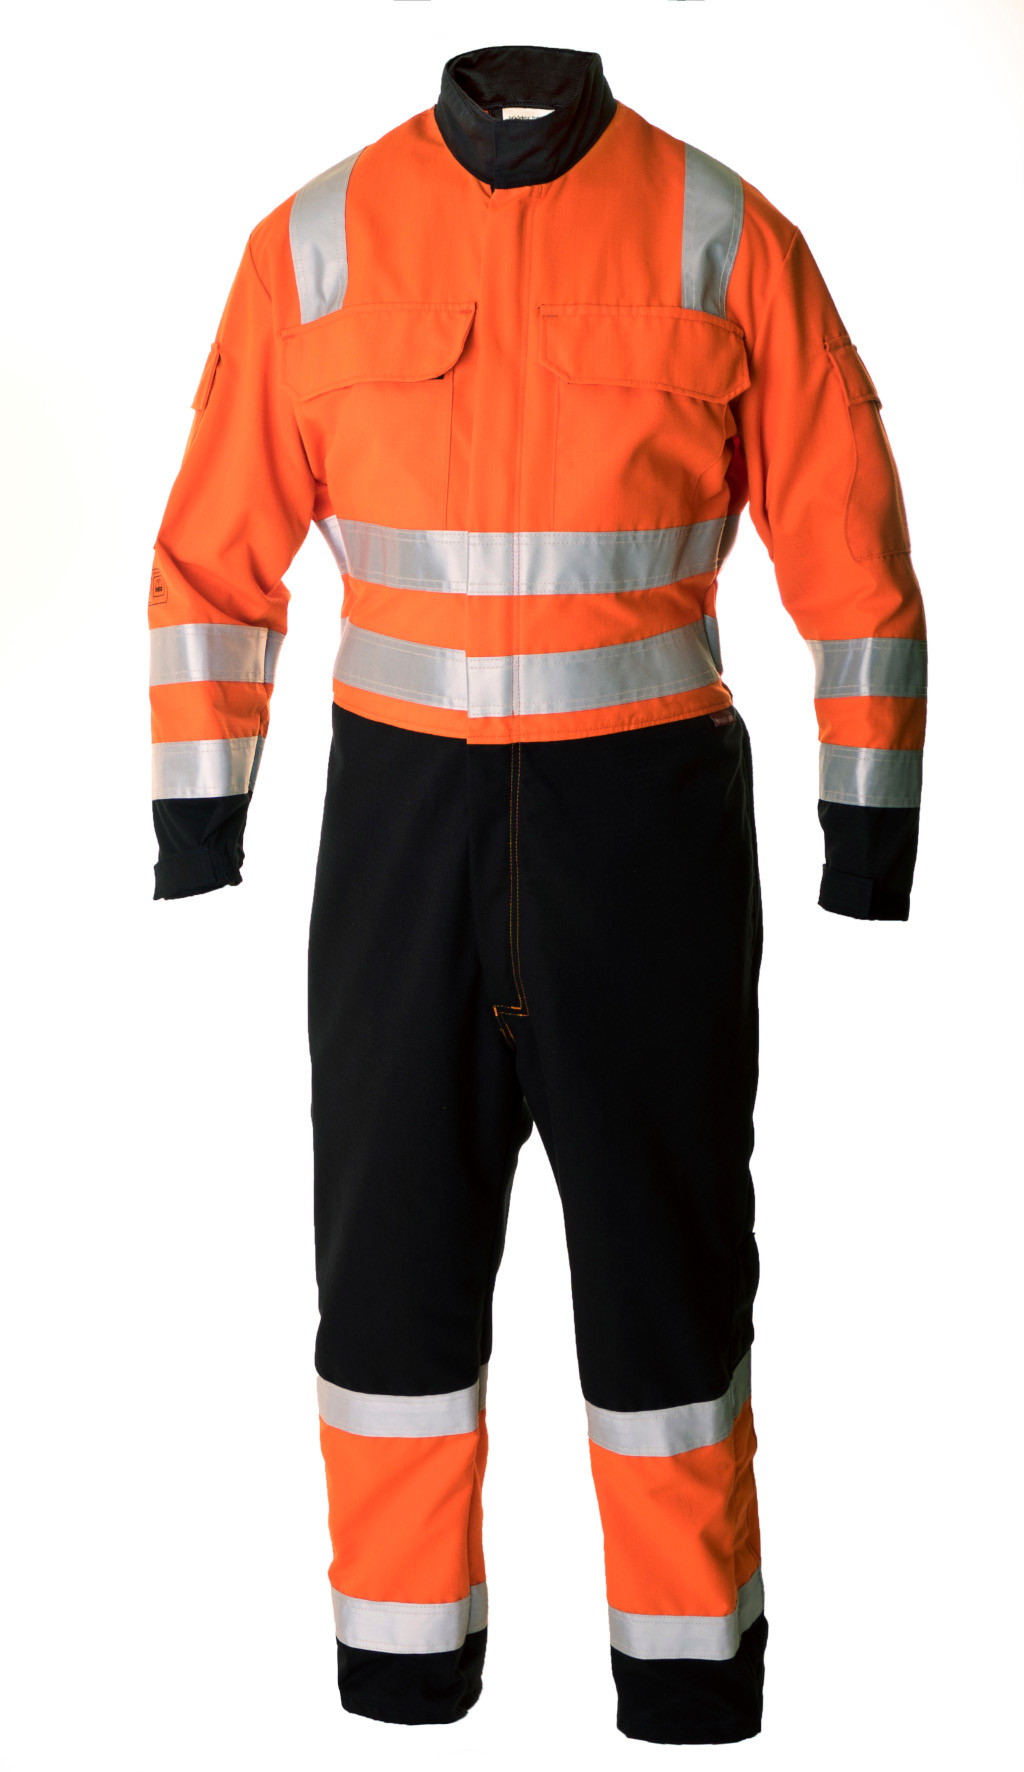 a95186a9043f Eagle Flame Resistant AS Coverall  EAG859  - £147.73   Safety ...